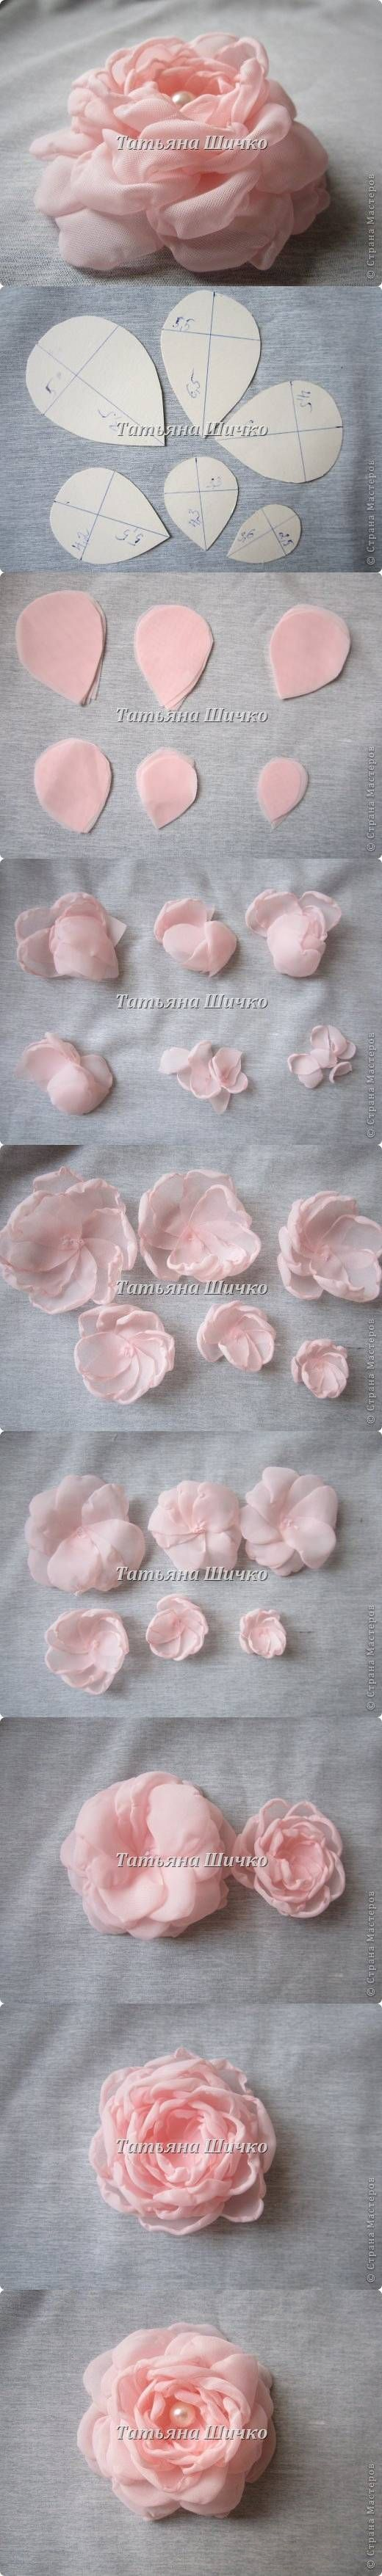 DIY Nylon Flower